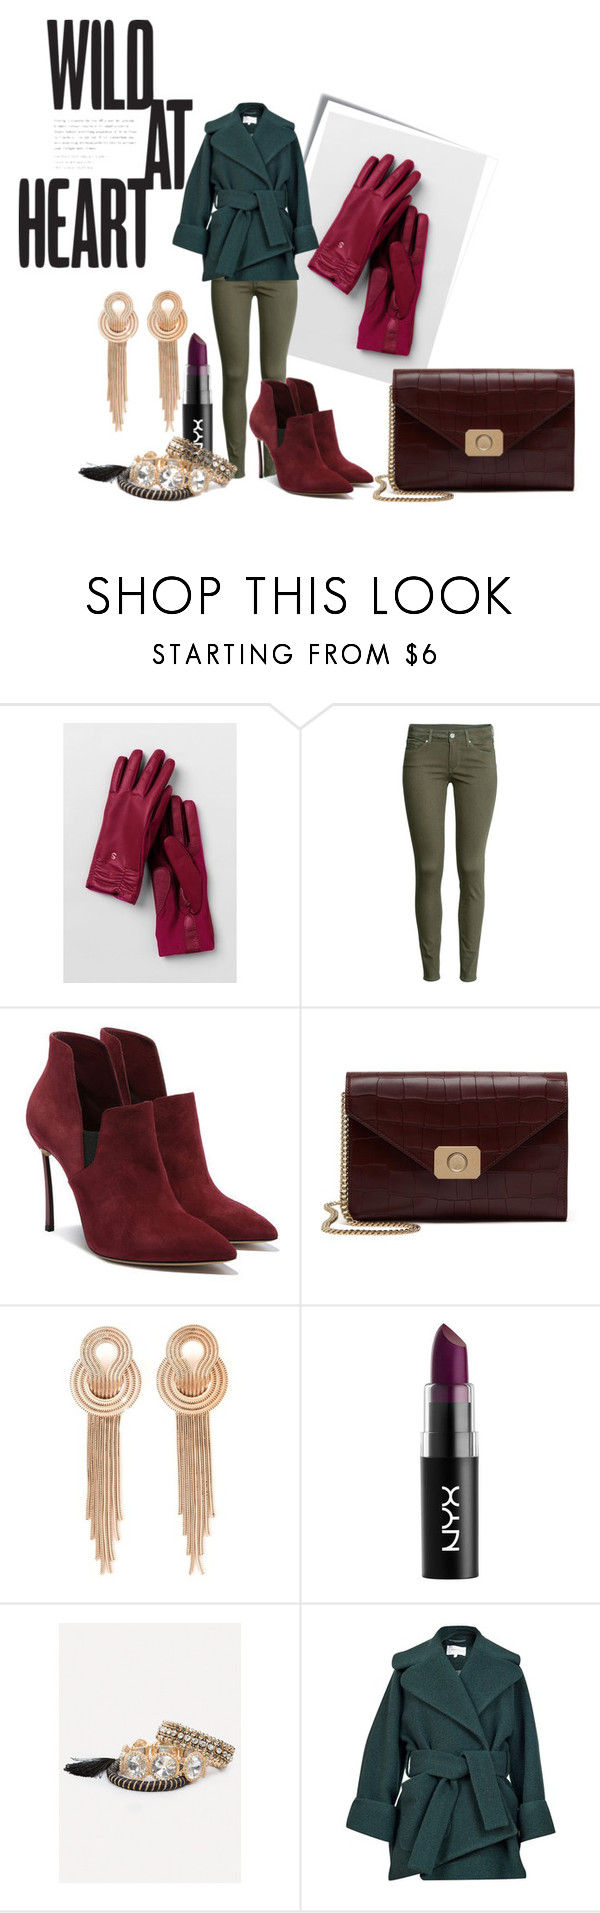 """Untitled #2542"" by mariaisabel701 ❤ liked on Polyvore featuring Post-It, Lands' End, H&M, Casadei, Mulberry, Lara Bohinc, Bebe and Carven"